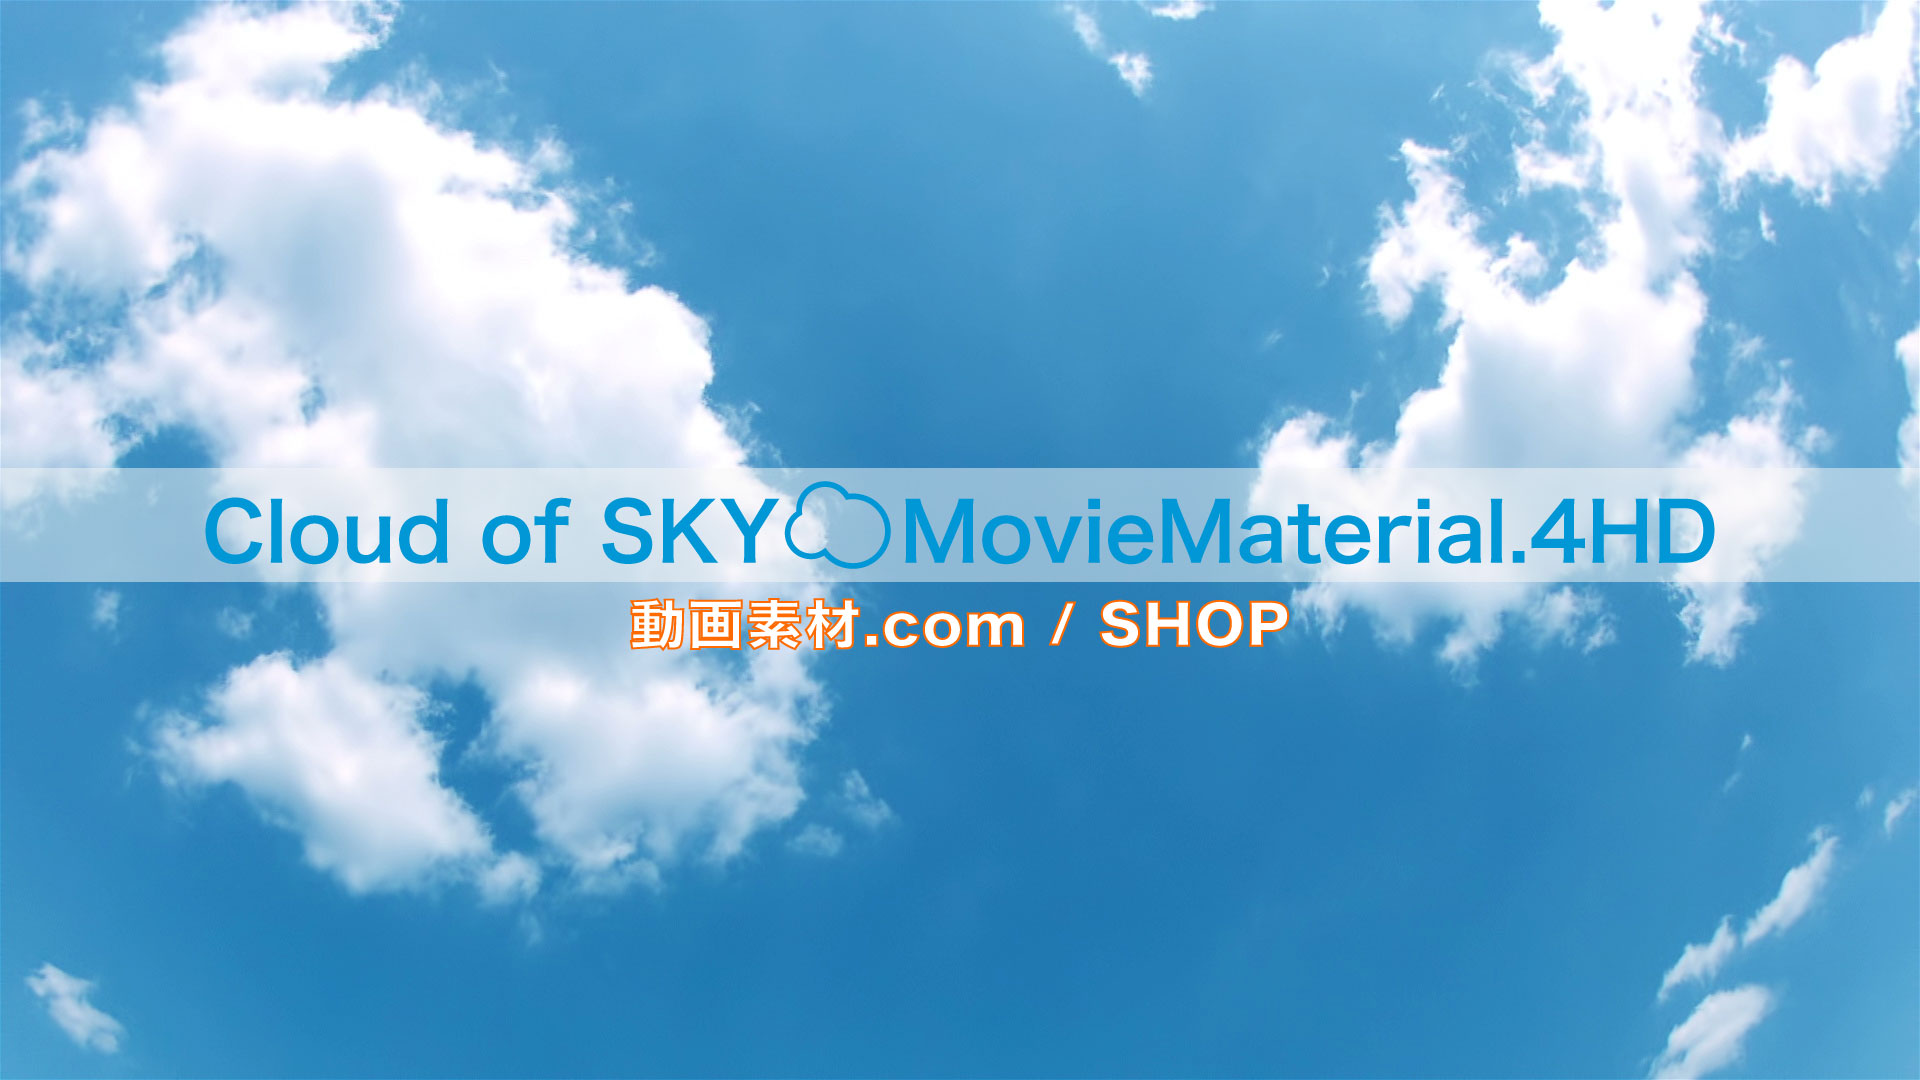 【Cloud of SKY MovieMaterial.4HD】ロイヤリティフリー フルハイビジョン空と雲の動画素材集 Image.6